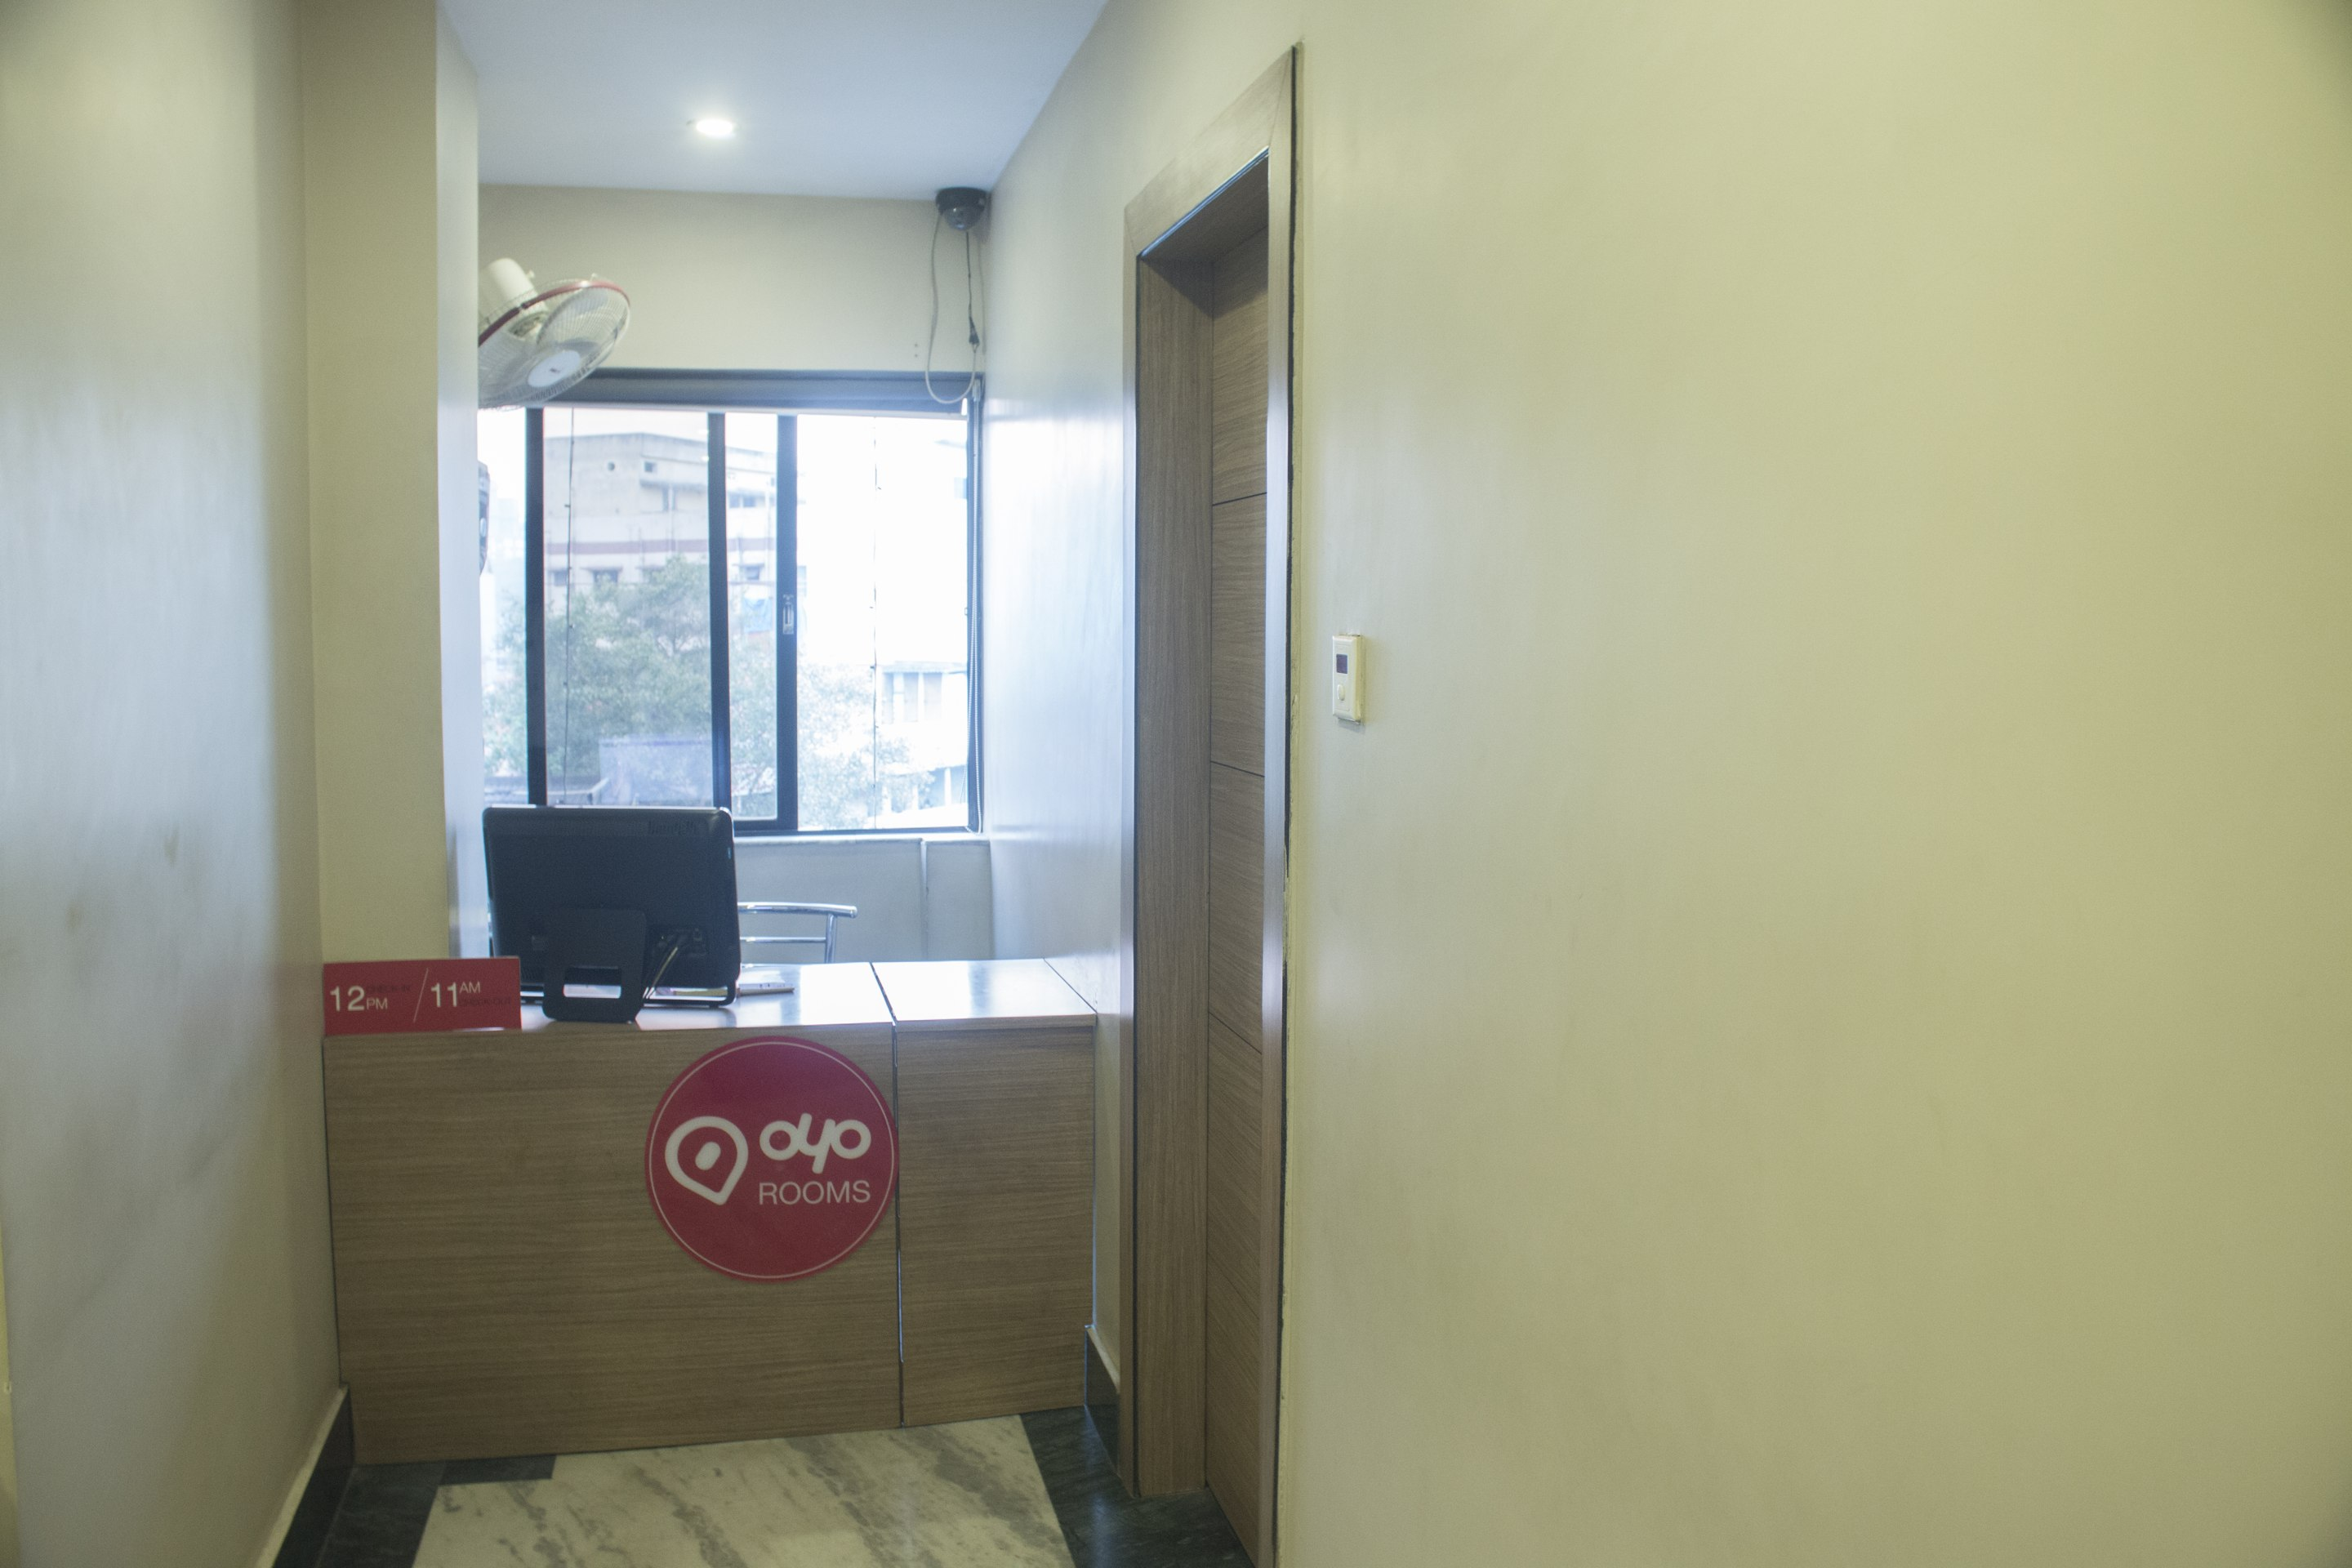 OYO Rooms Sakchi Howrah Bridge